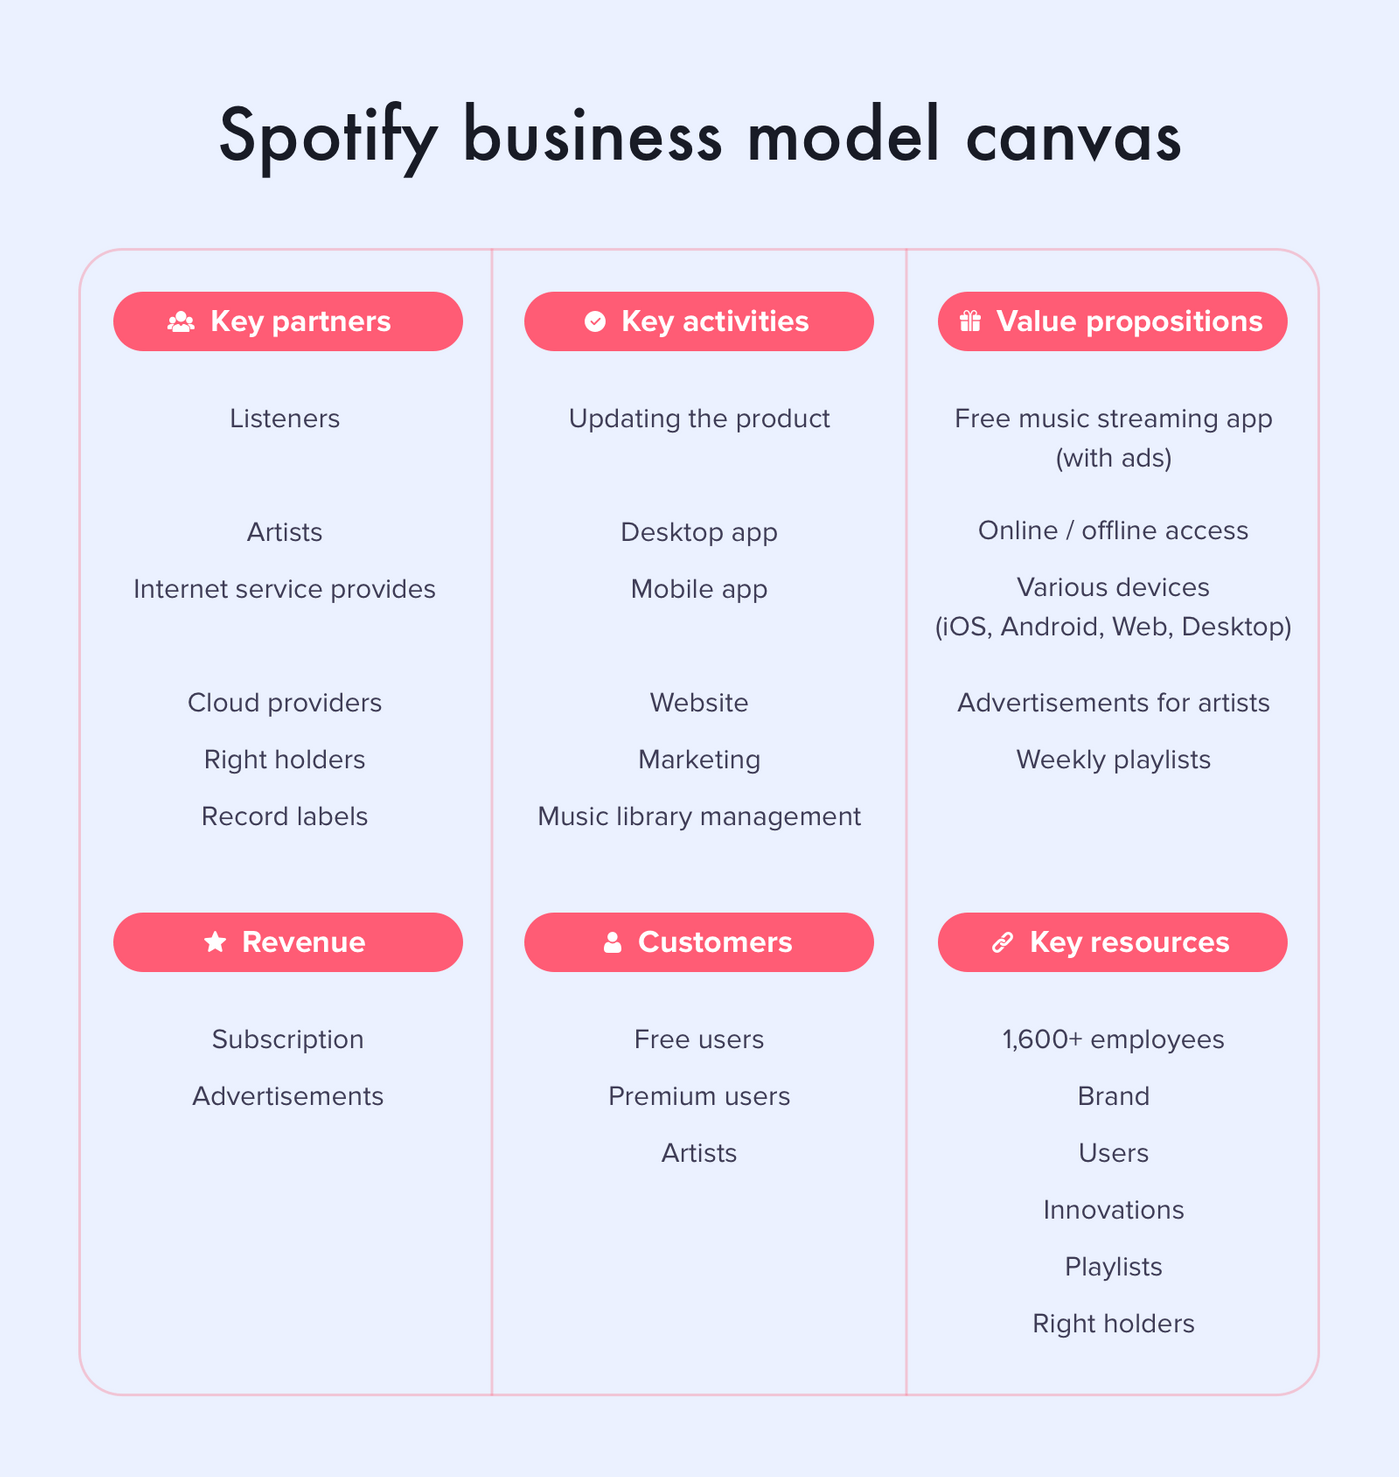 How to make a music streaming app: Spotify business model